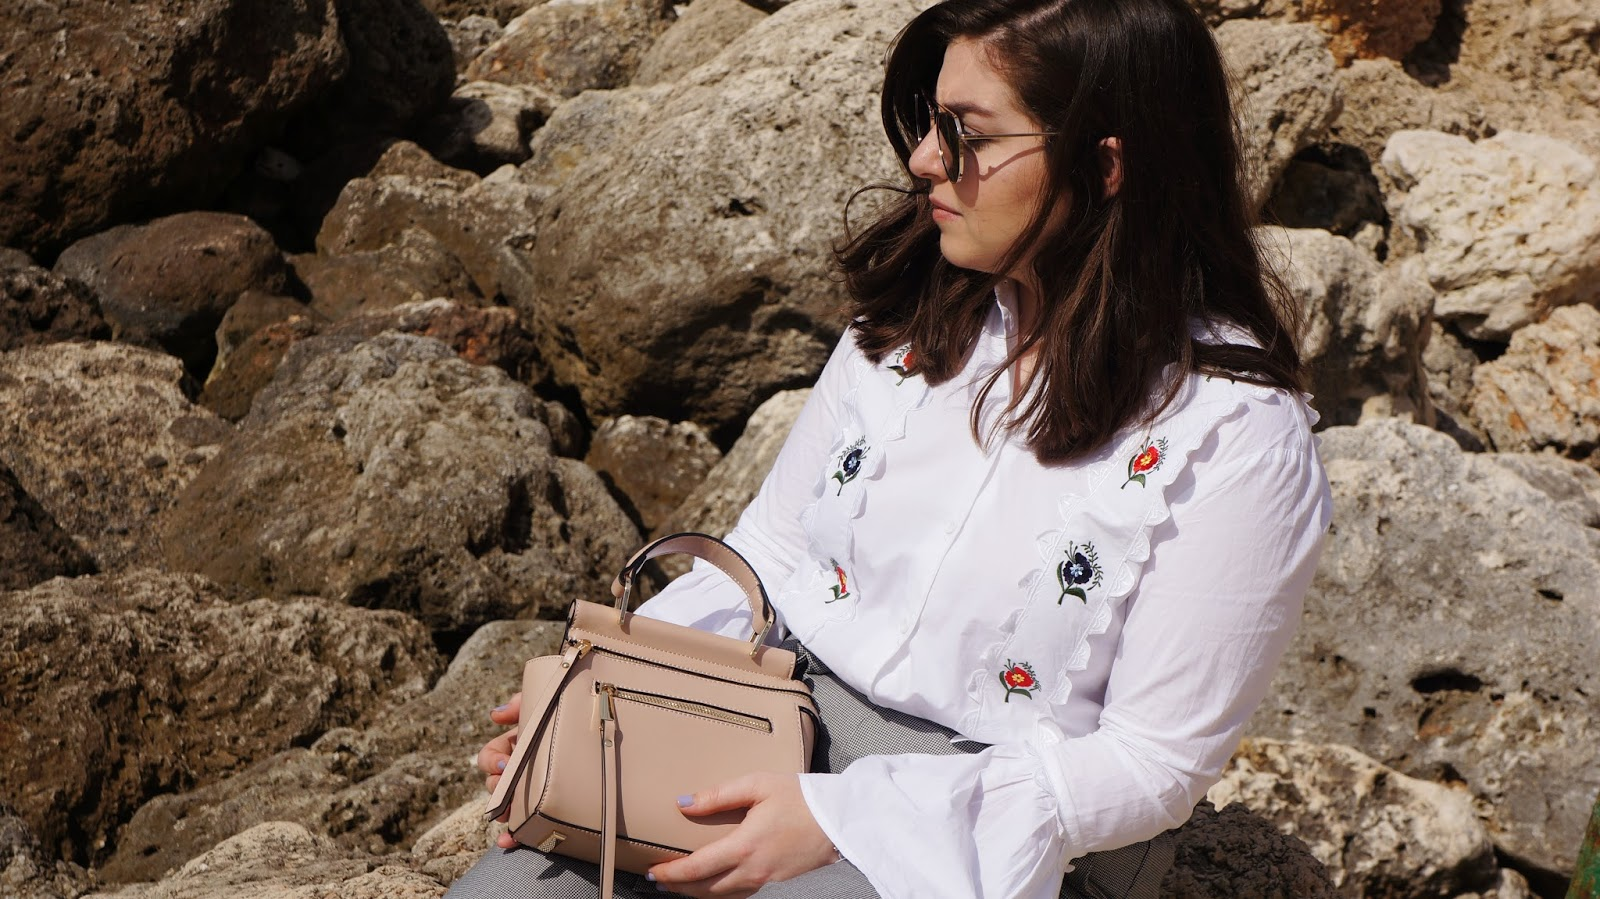 Topshop Embroidered Shirt and Dune Bag in the Maltese Rocks